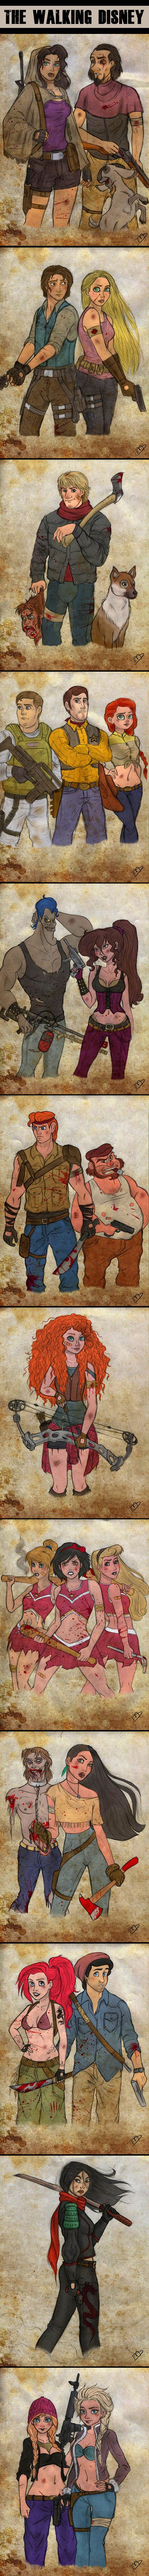 People don't generally think of Disney characters as particularly scary (unless you're talking about villains like Ursula or Maleficent, anyway). There's certainly nothing frightening about Disney's princesses and princes, right? Think again -- things are getting post-apocalyptic. DeviantART user Kasami-Sensei has re-envisioned the sweet and innocent protagonists of several Disney films in the style of zombie hunters (and a zombie) from The Walking Dead...